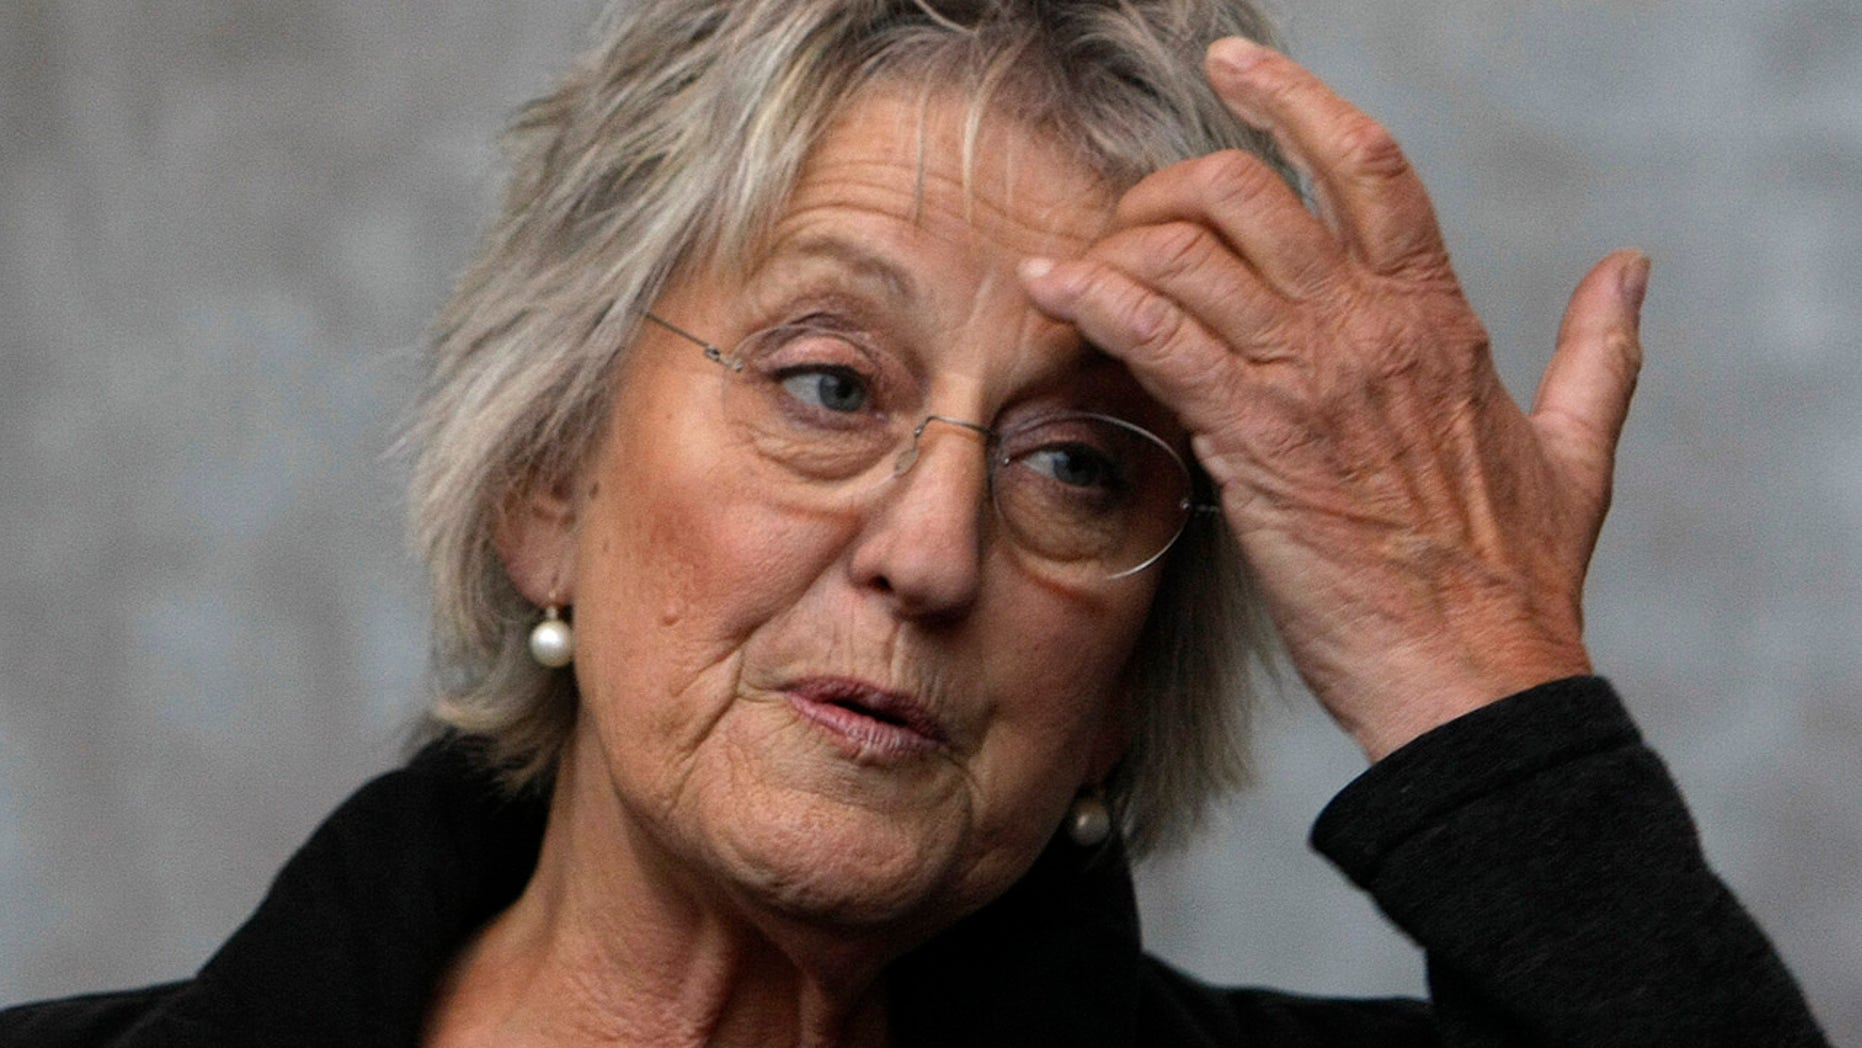 Germaine Greer made controversial comments about rape at a literary festival.